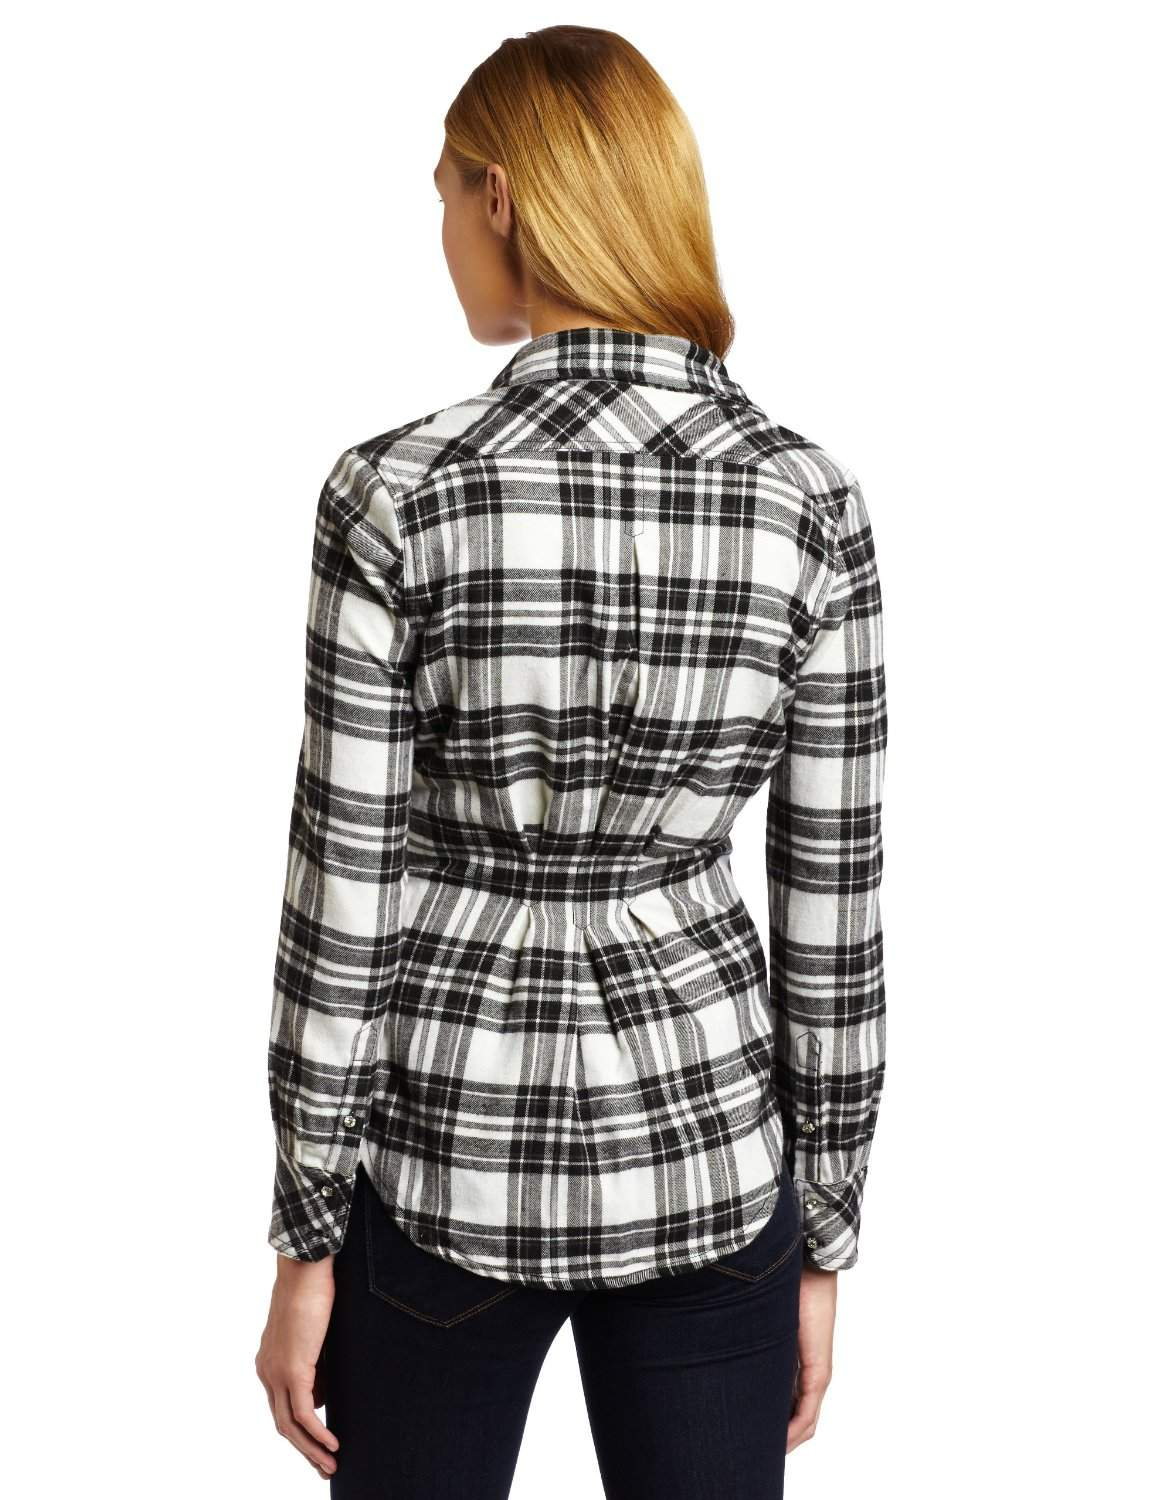 Womens flannel shirts 2012 03 11 for Womens christmas flannel shirt